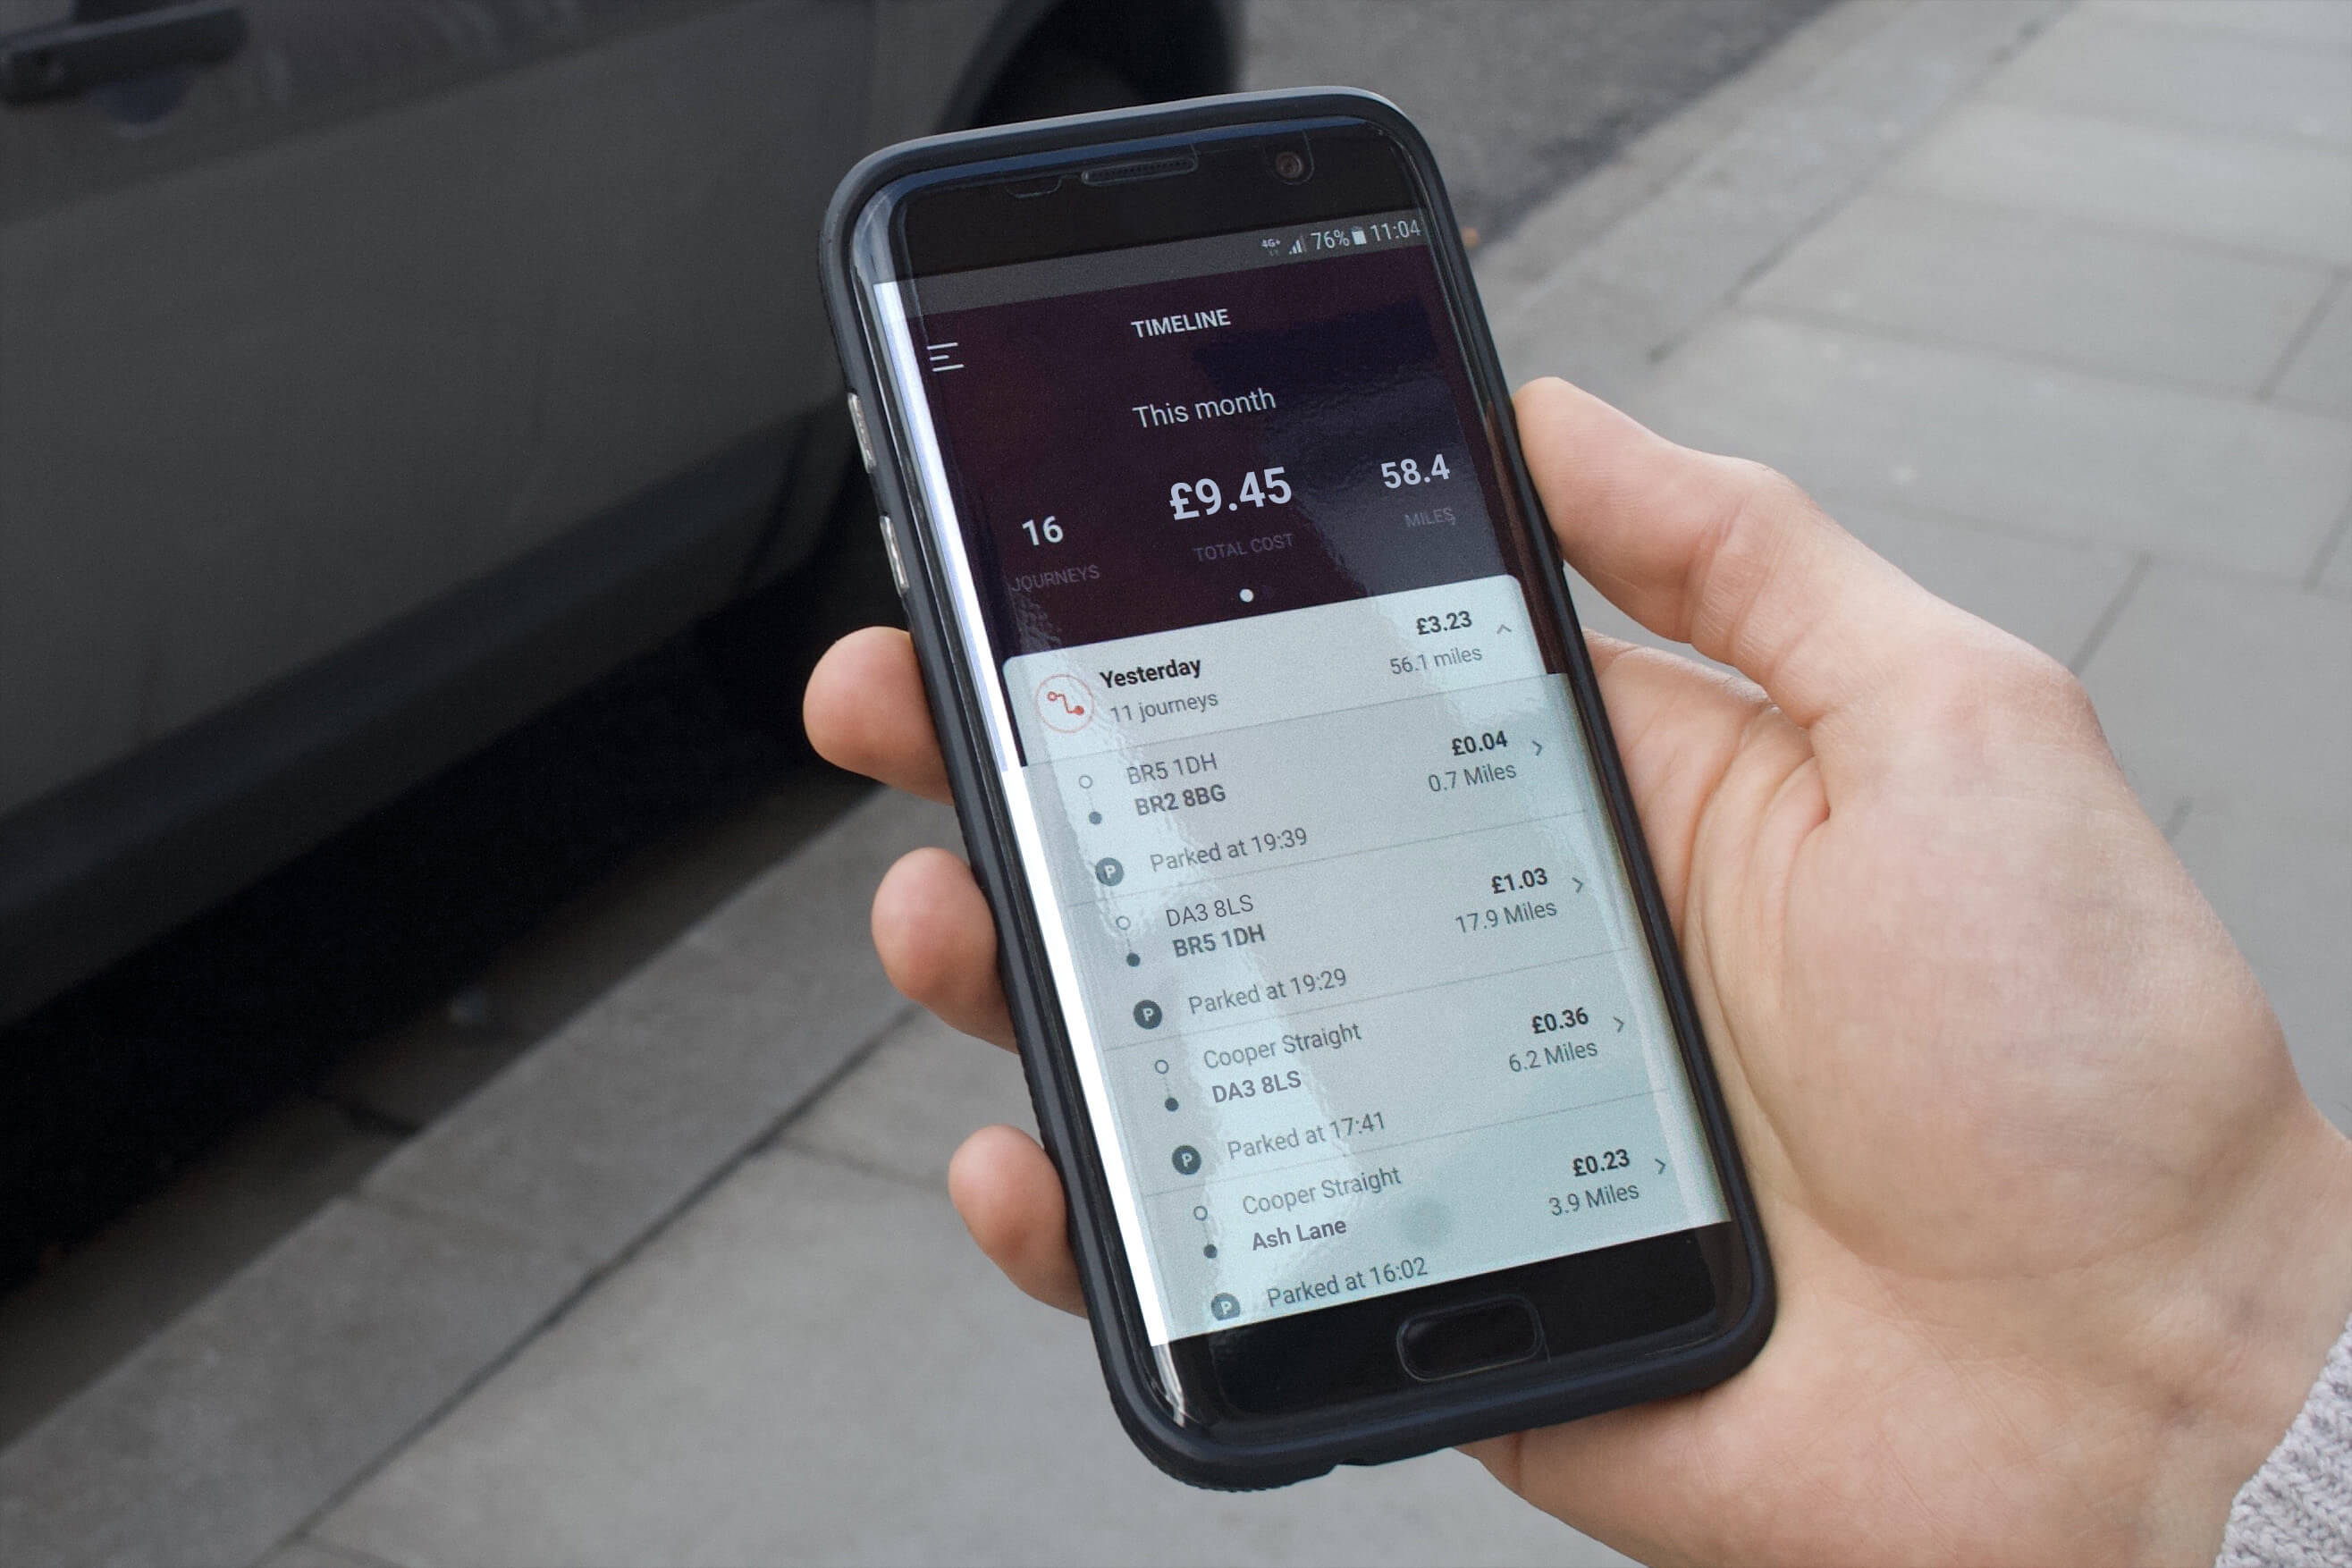 By Miles car insurance smartphone app